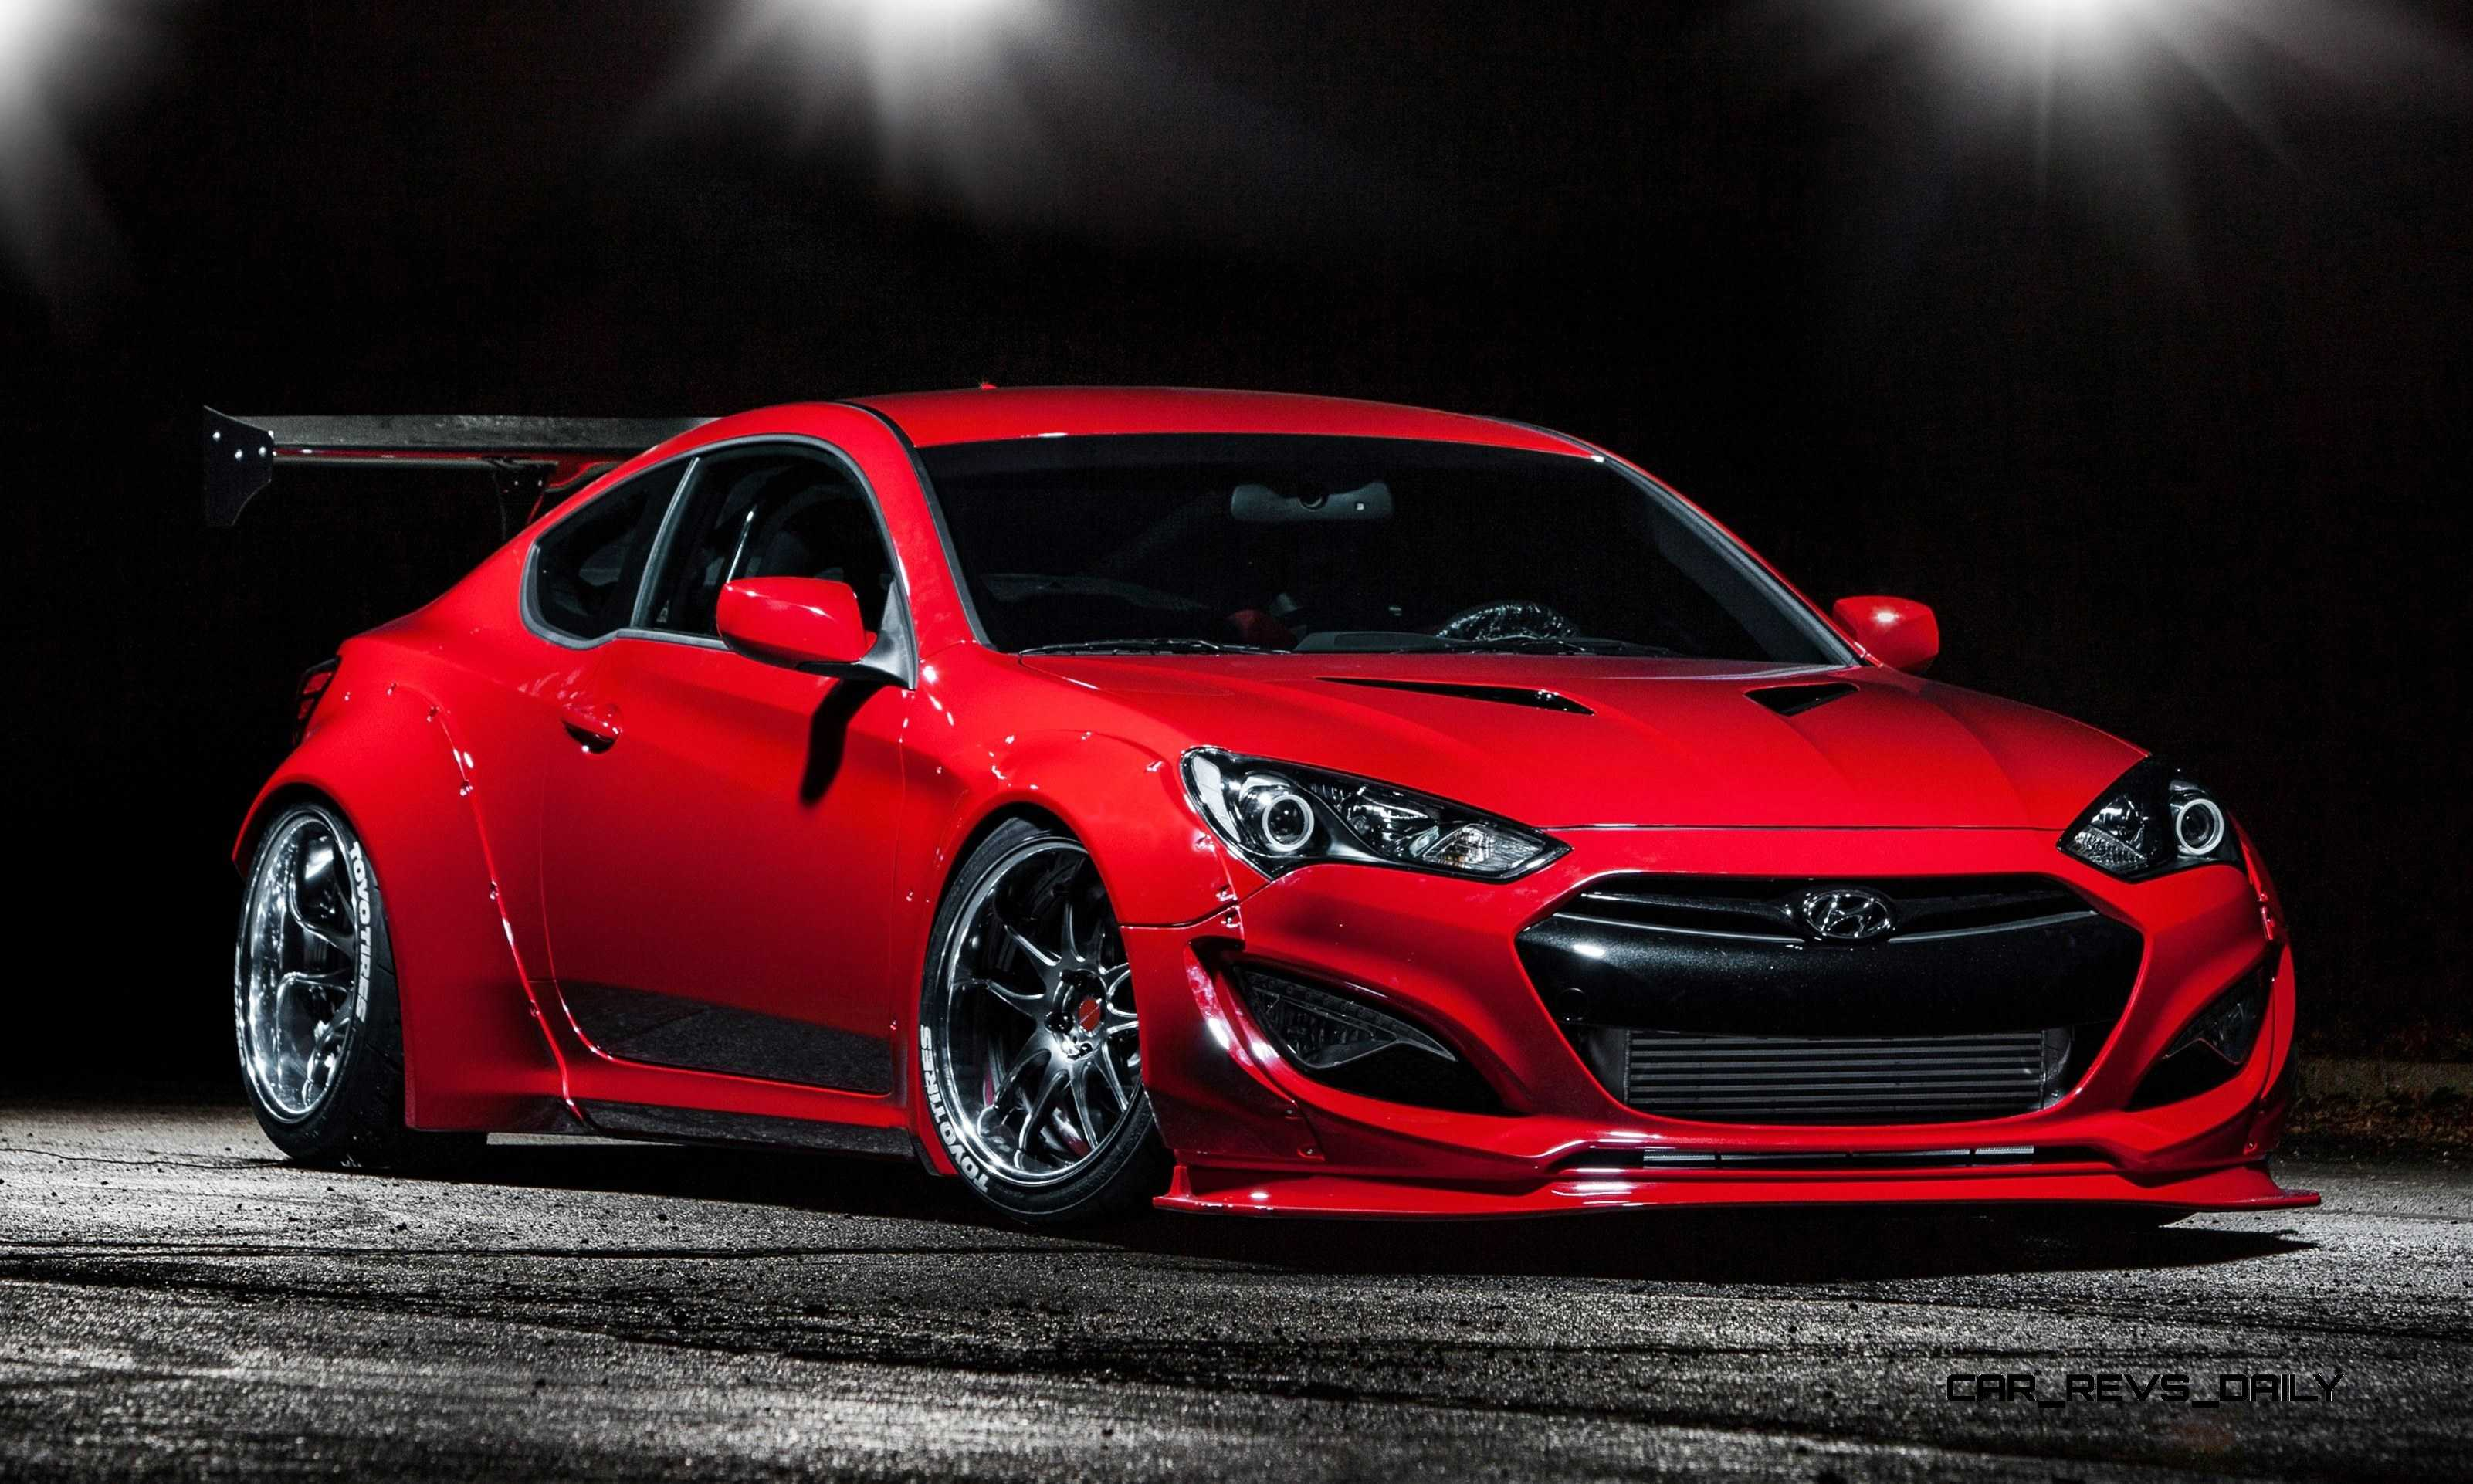 best of sema 2014 hyundai genesis coupe by bloodtype racing. Black Bedroom Furniture Sets. Home Design Ideas